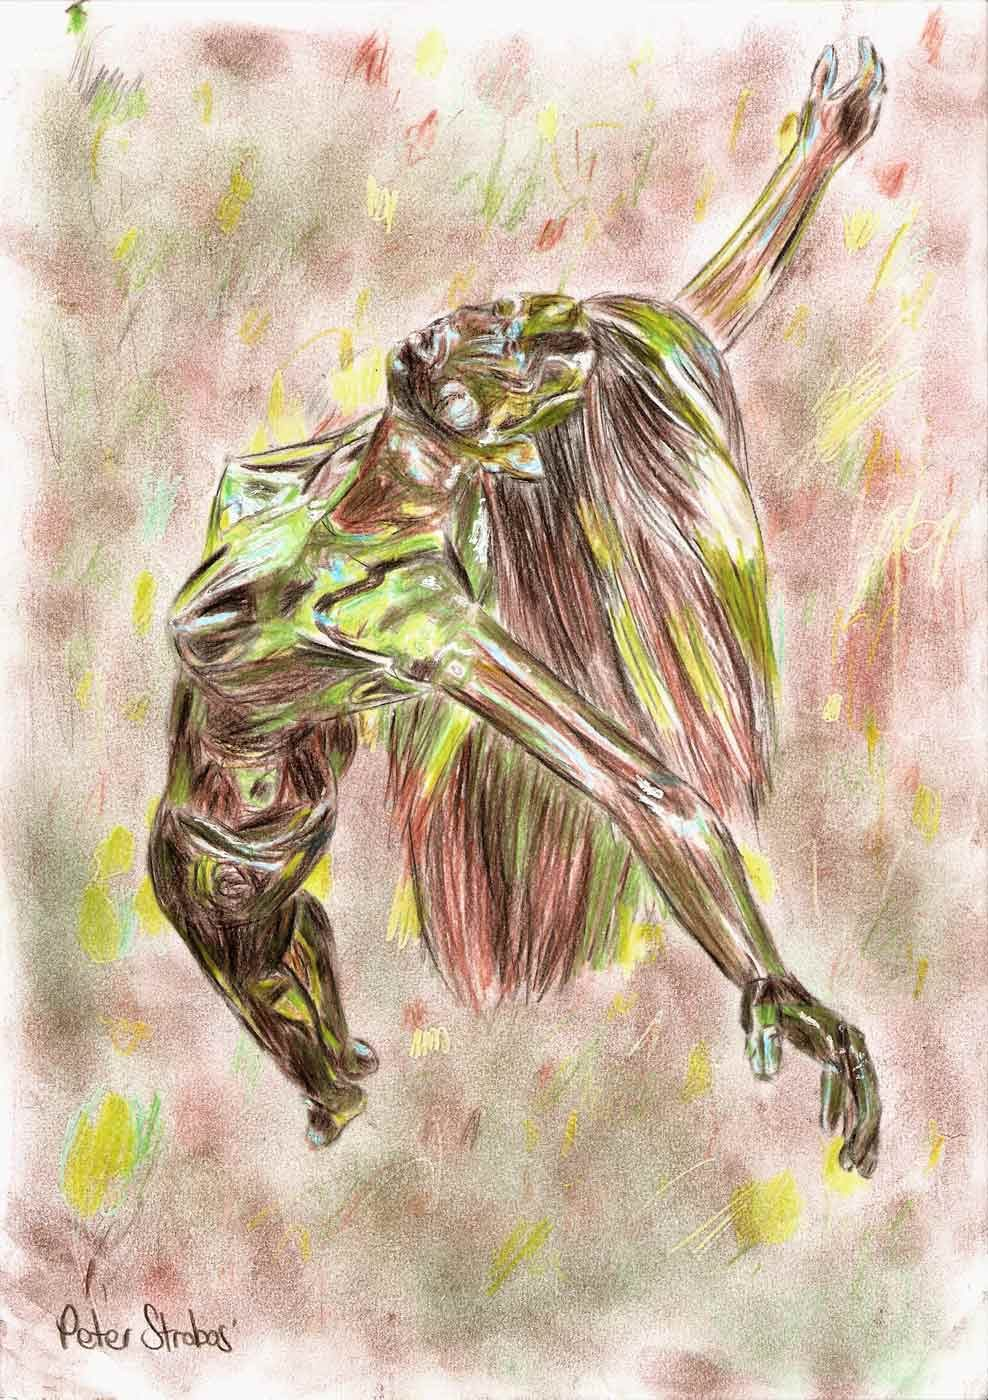 Colour pencil concept sketch of woman rising upward.